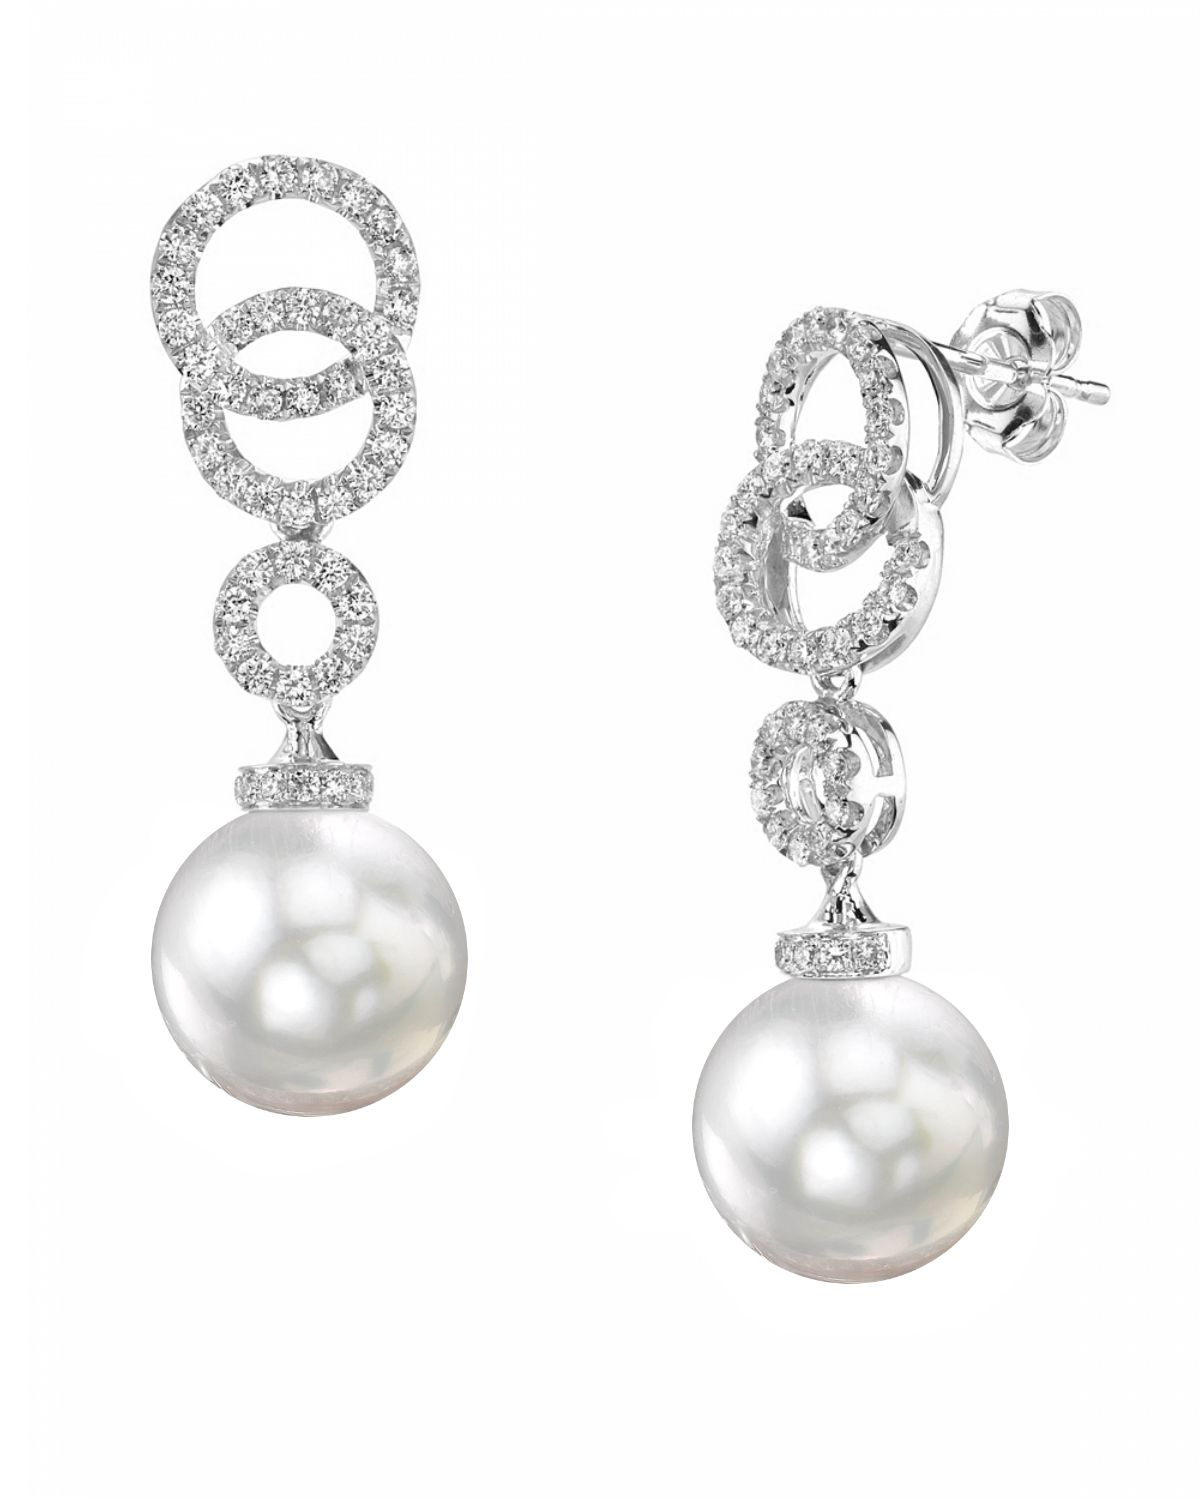 South Sea Pearl & Diamond Link Earrings